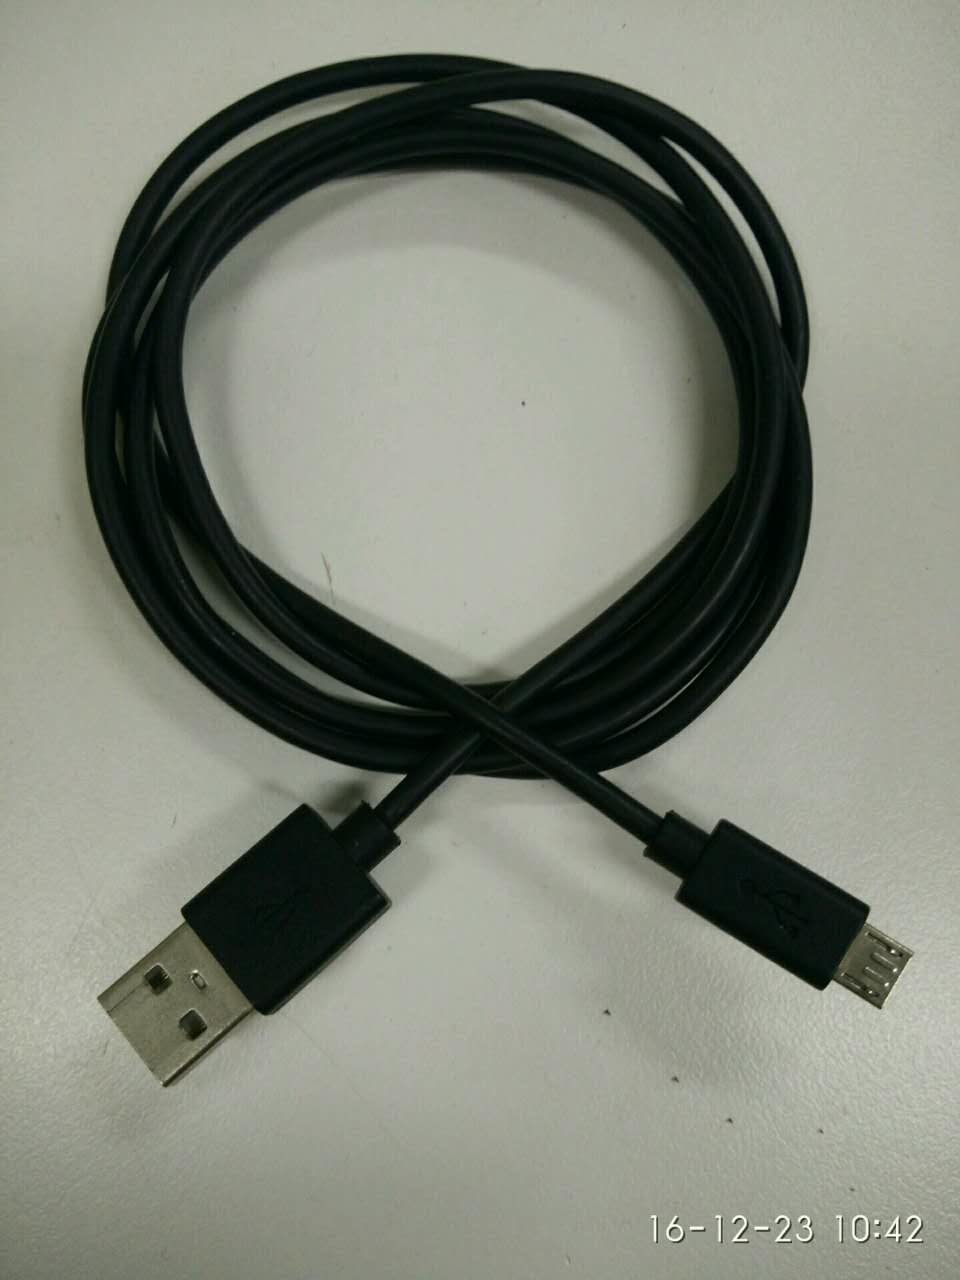 portable baofeng usb programming cable With ISO9001 Certificate